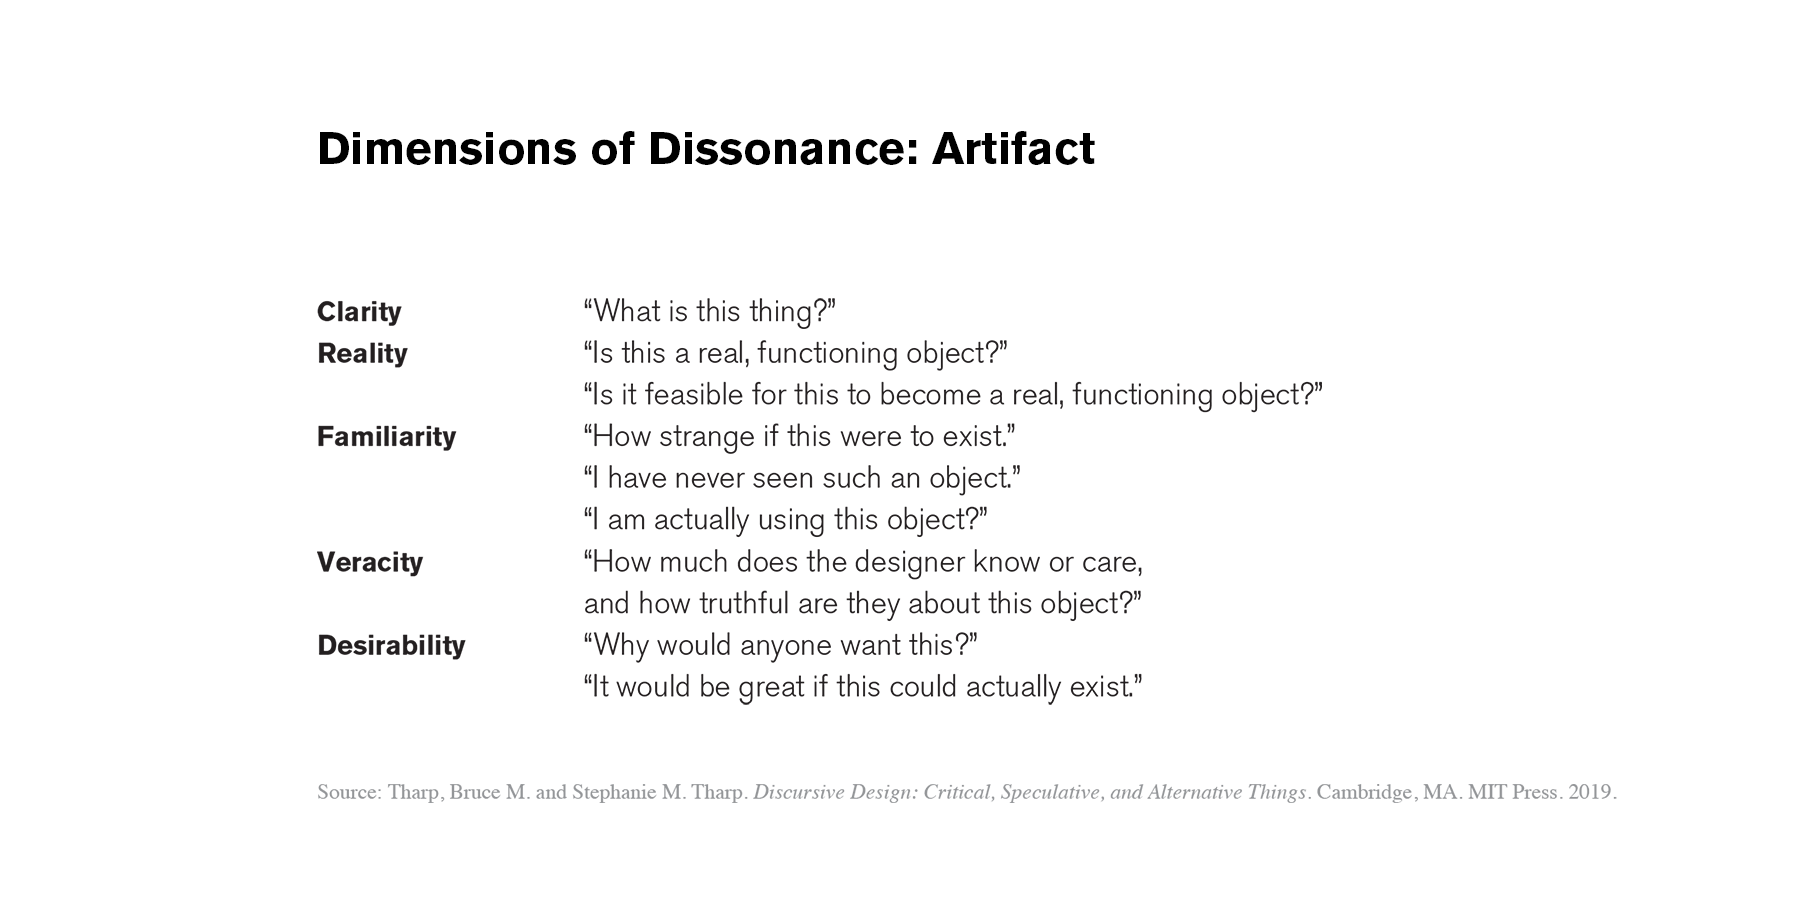 Dissonance Dimensions: Artifact